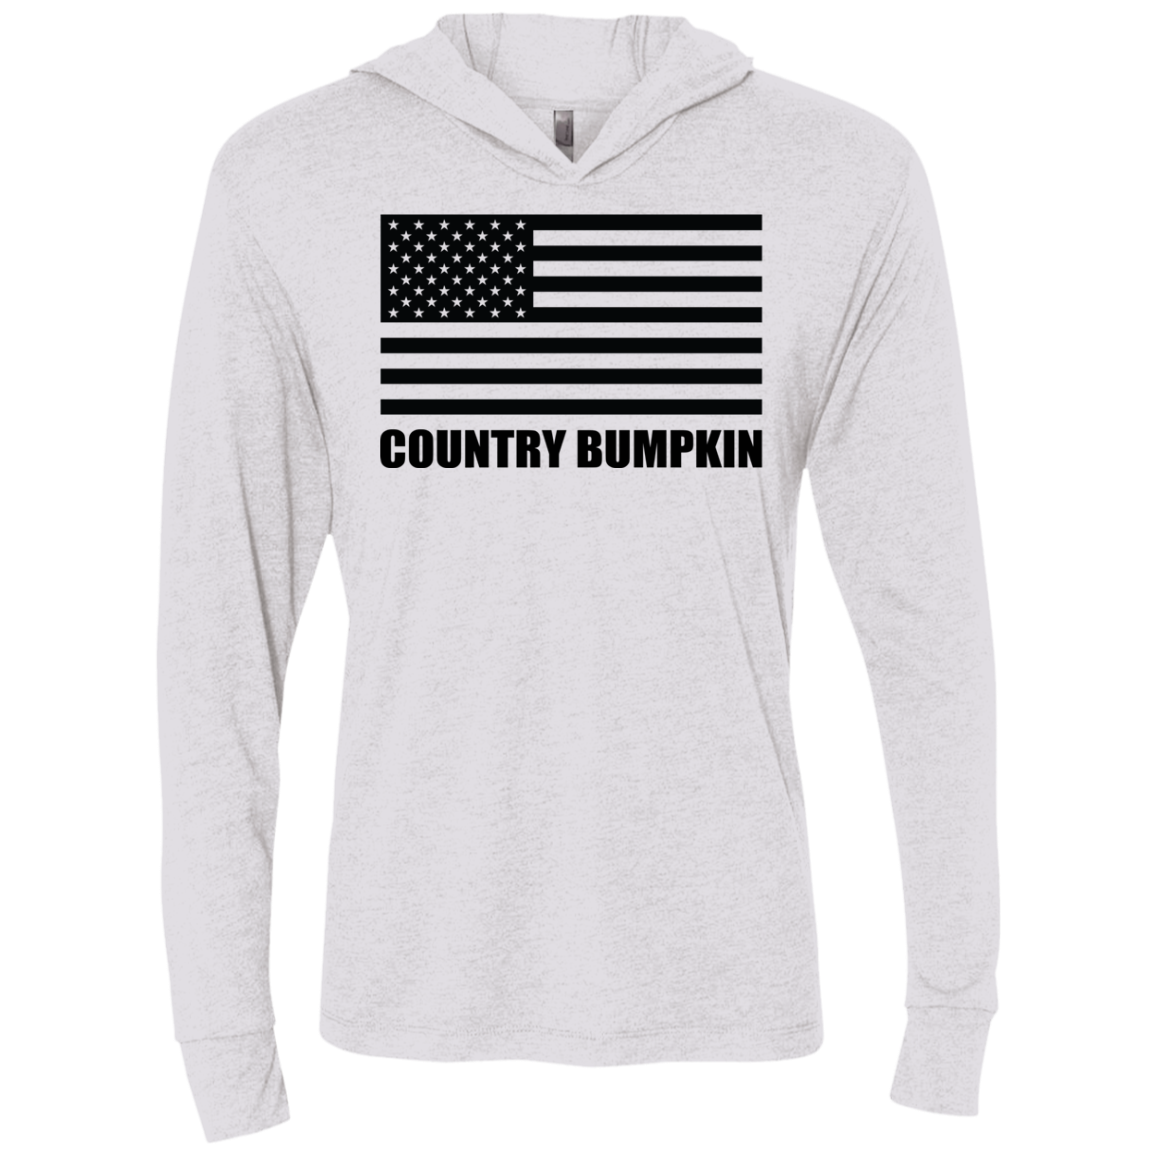 Country Bumpkin American Flag NL6021 Unisex Triblend LS Hooded T-Shirt